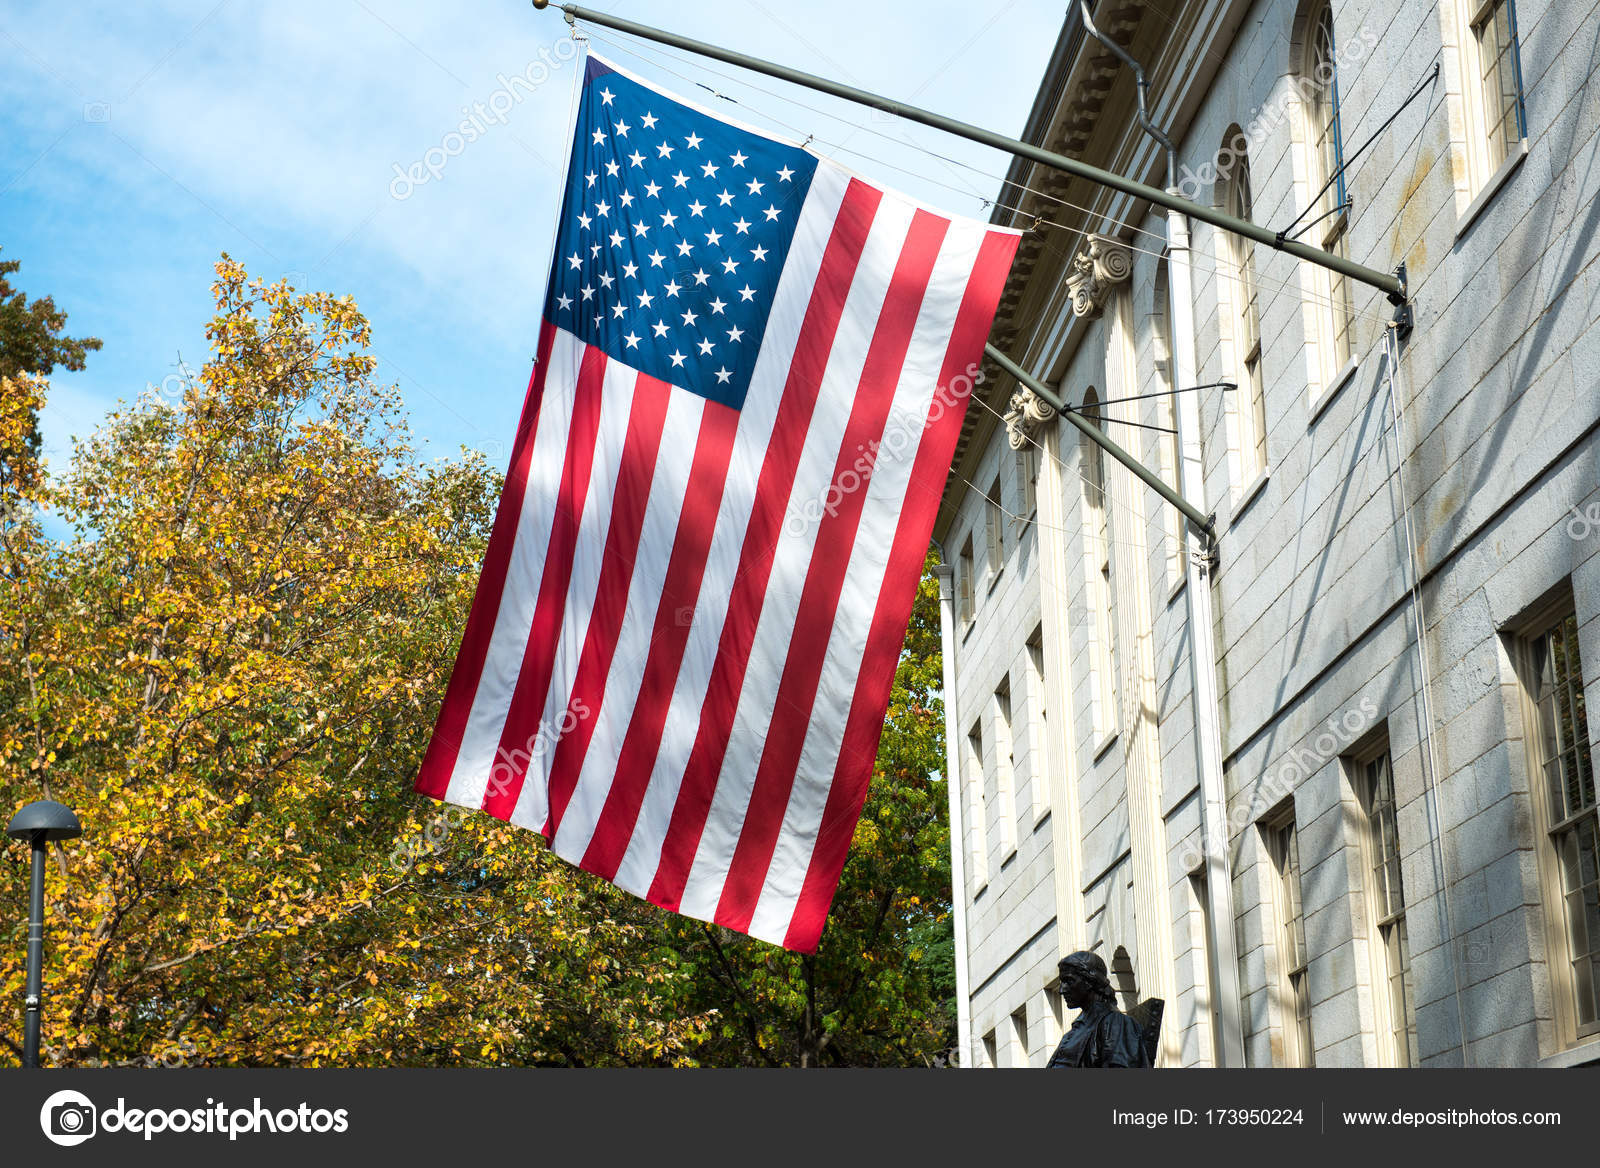 American flag on the college campus building — Stock Photo